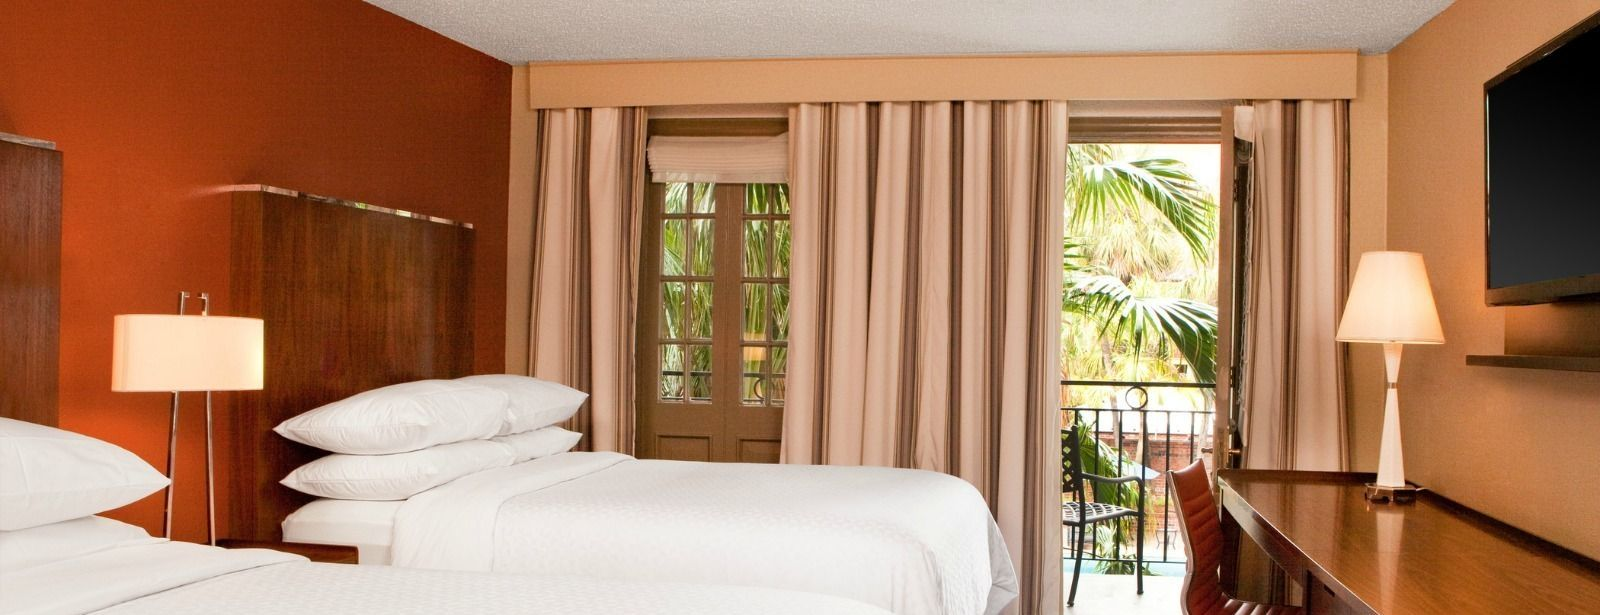 French Quarter Guest Rooms - Double Guest Room with Balcony